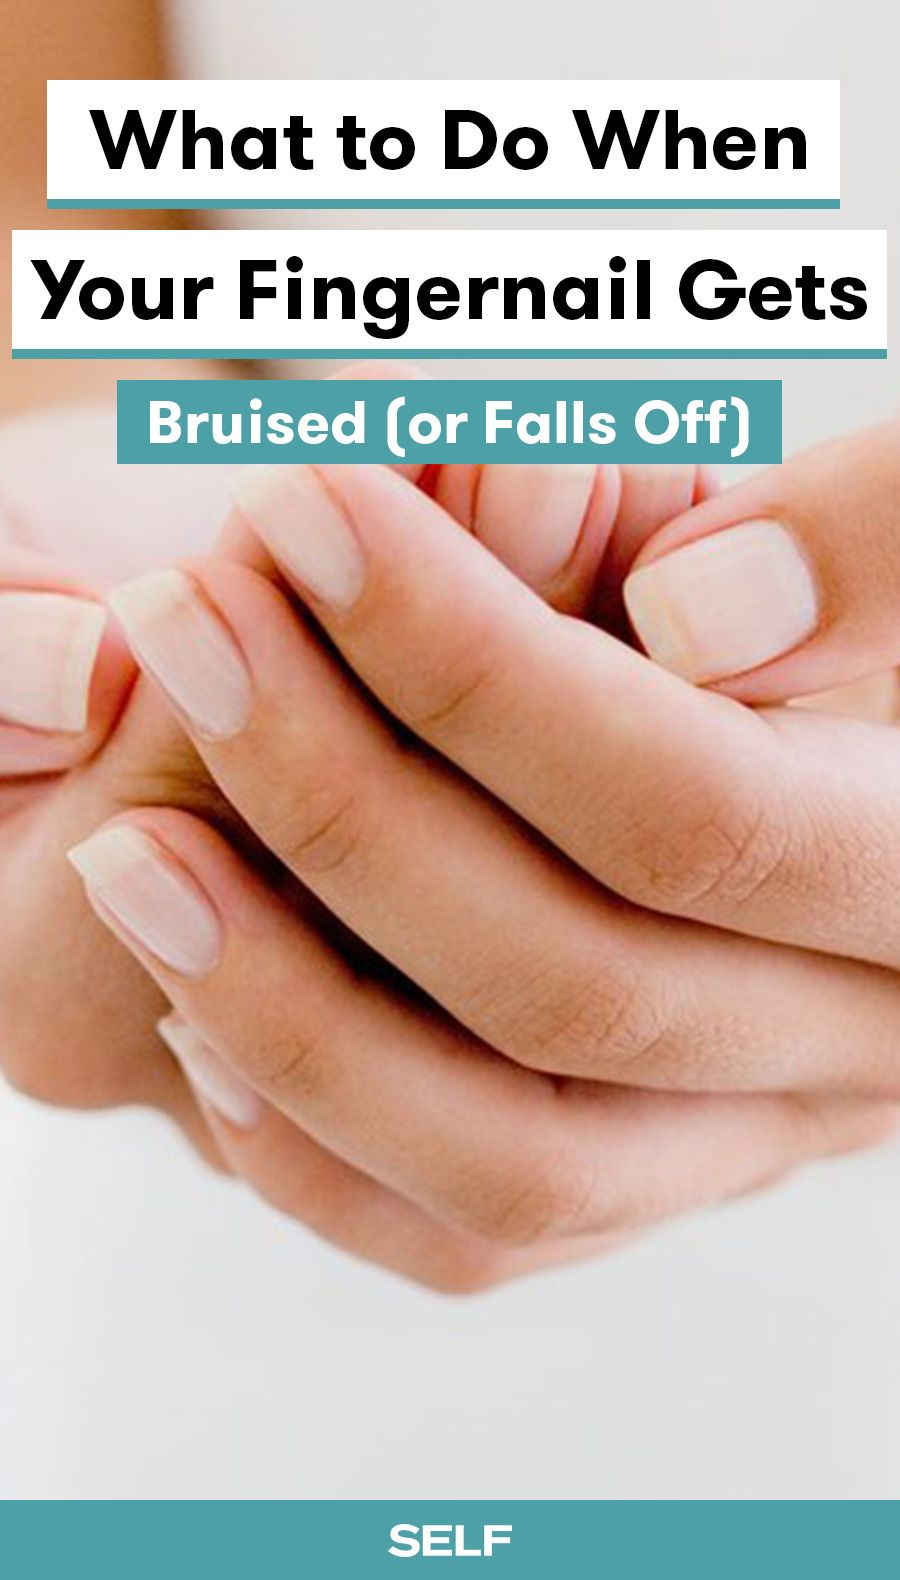 Nail Injuries Can Range From A Little Broken End To Full On Bloody Mess